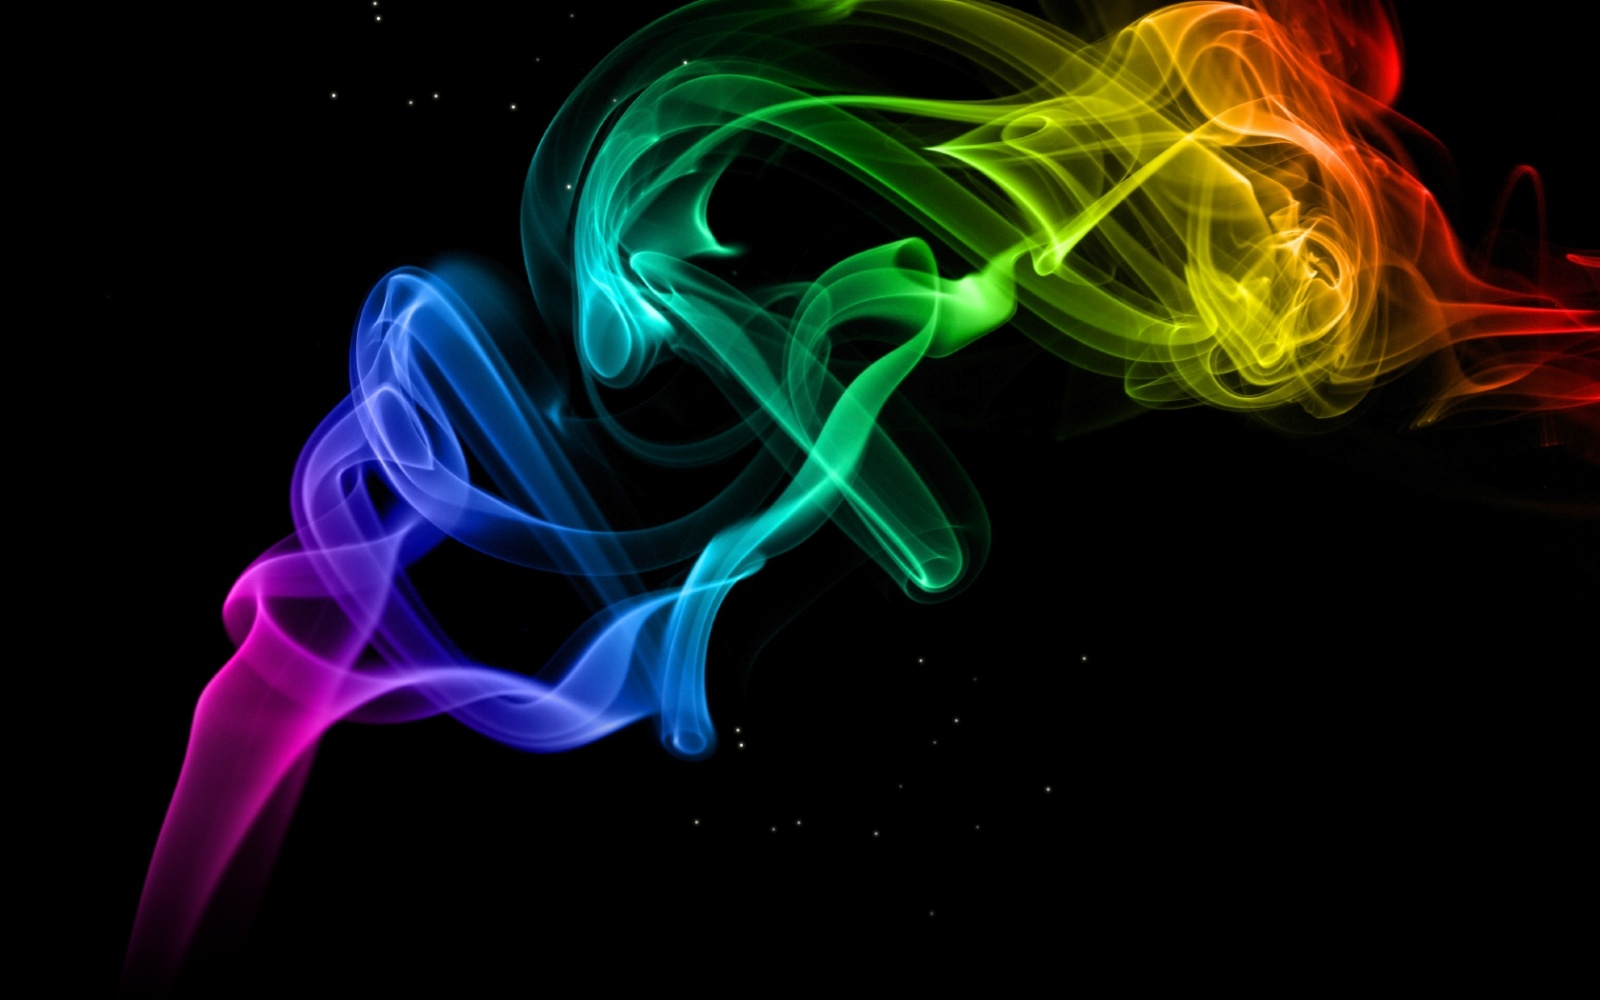 Colorful Smoke Wallpaper   8426 1600x1000